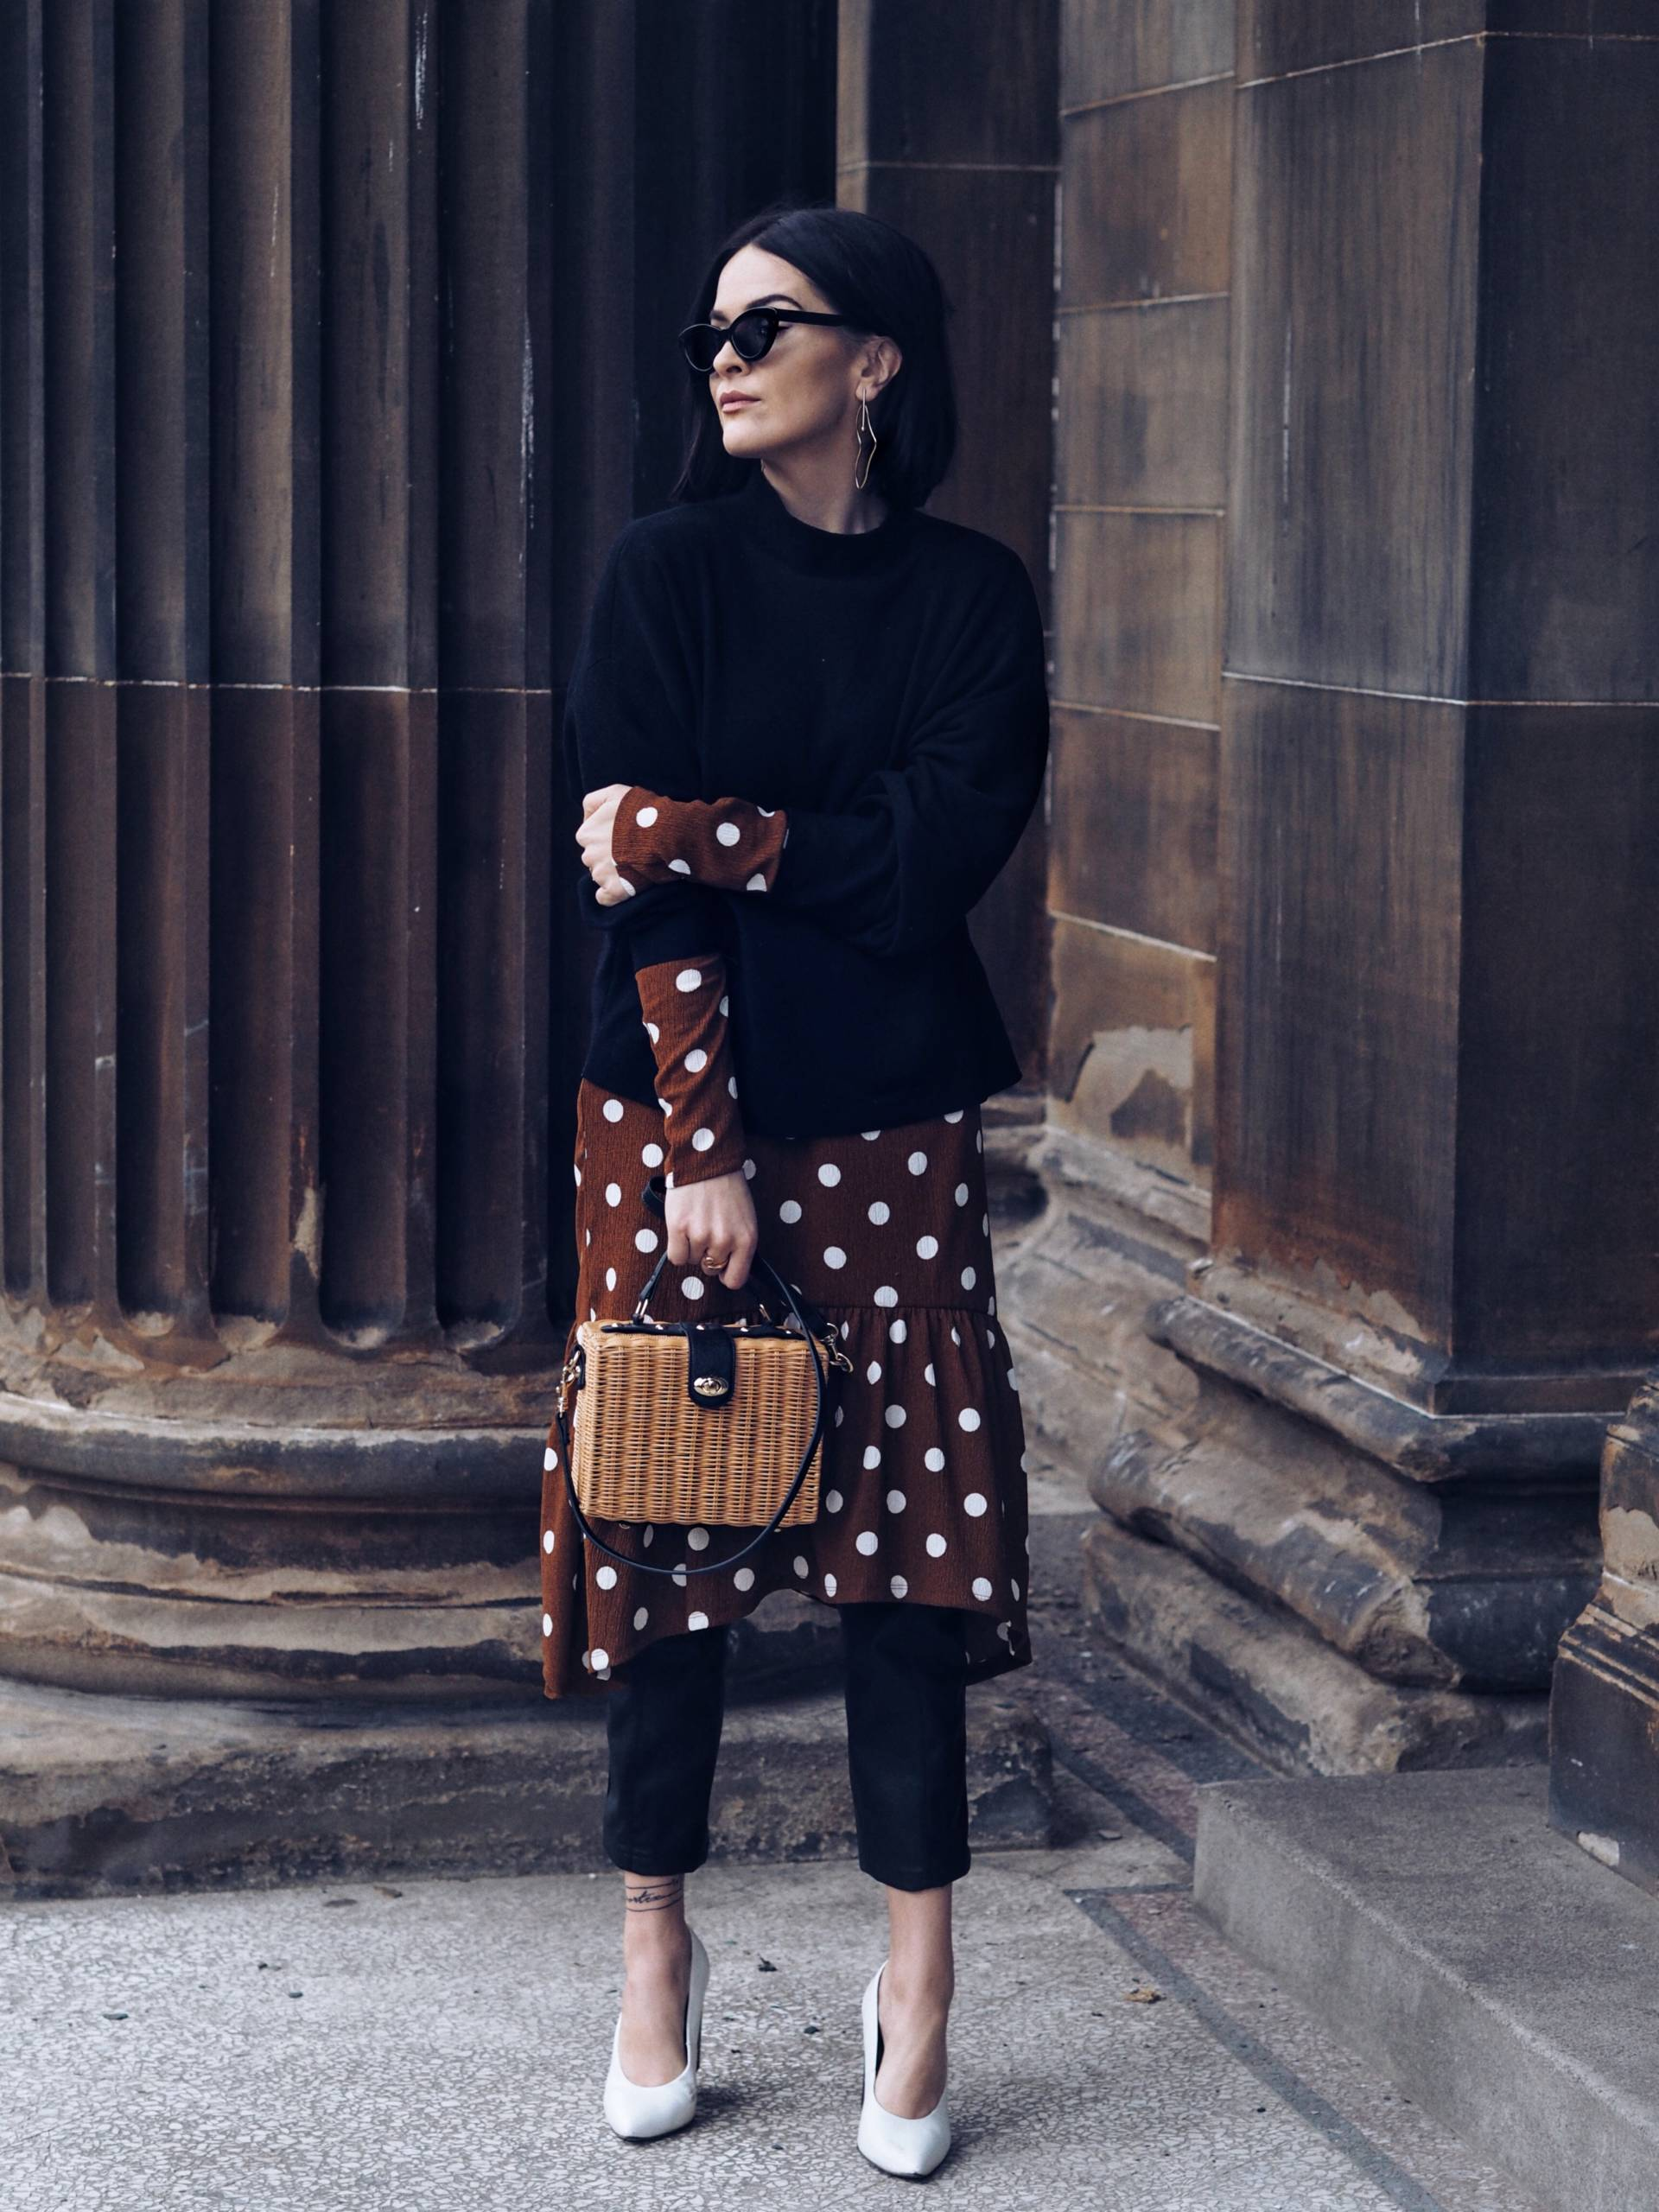 HOW-TO-WEAR-A-DRESS-IN-THE-WINTER-STYLE-BLOGGER-LAFOTKA-GLASGOW